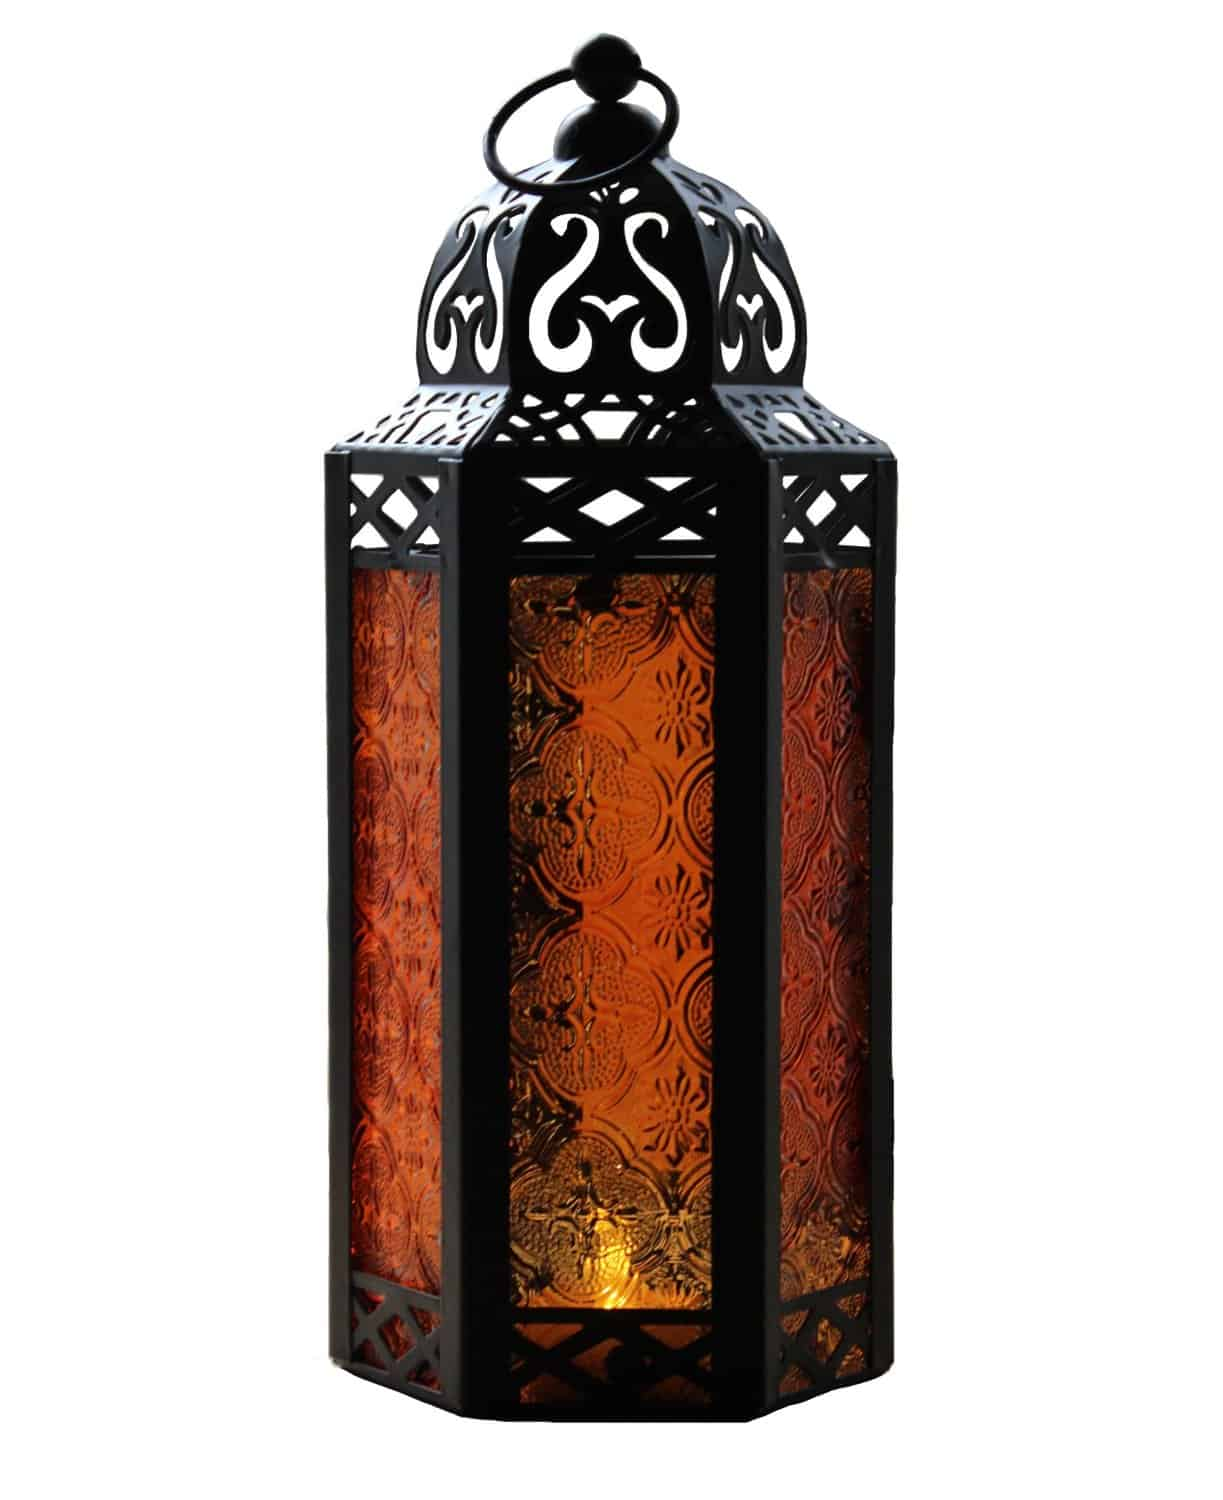 Moroccan home decor ideas by decor snob - Improve your home decor with moroccan lamps ...